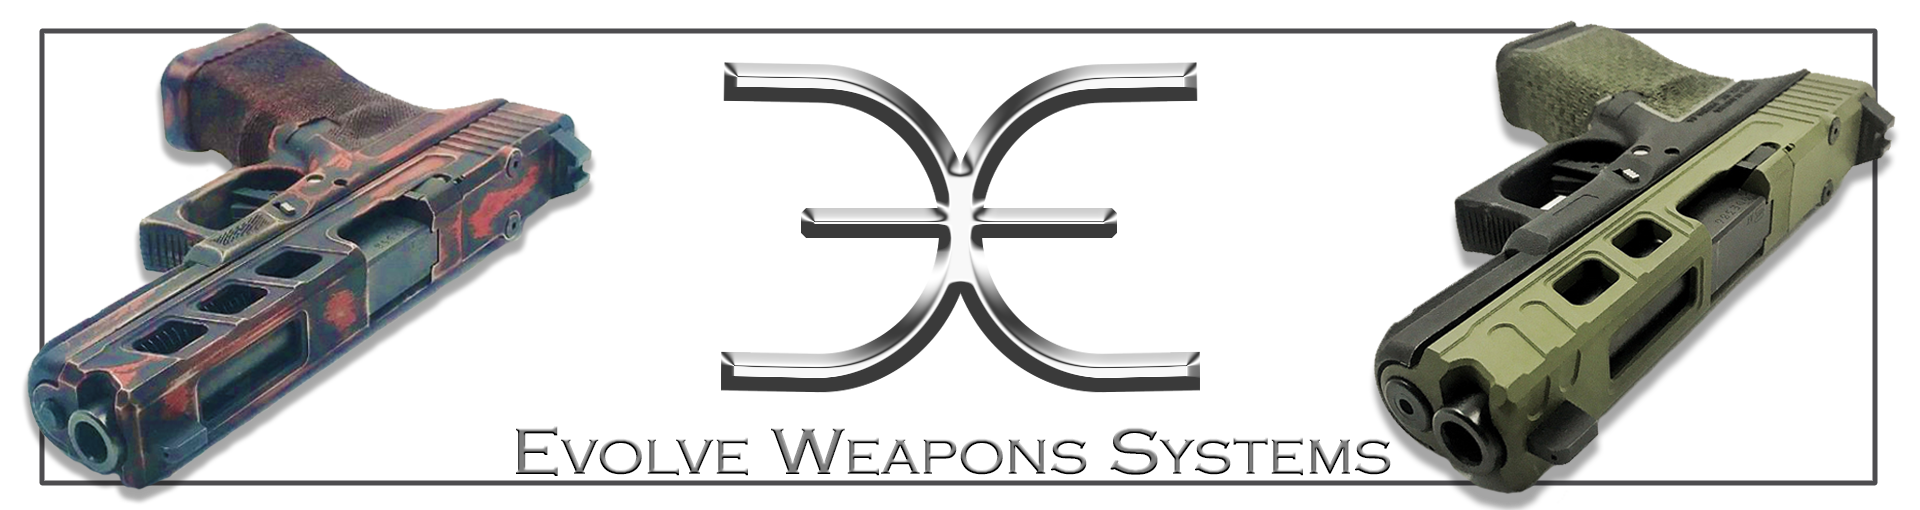 evolve-weapons-systems